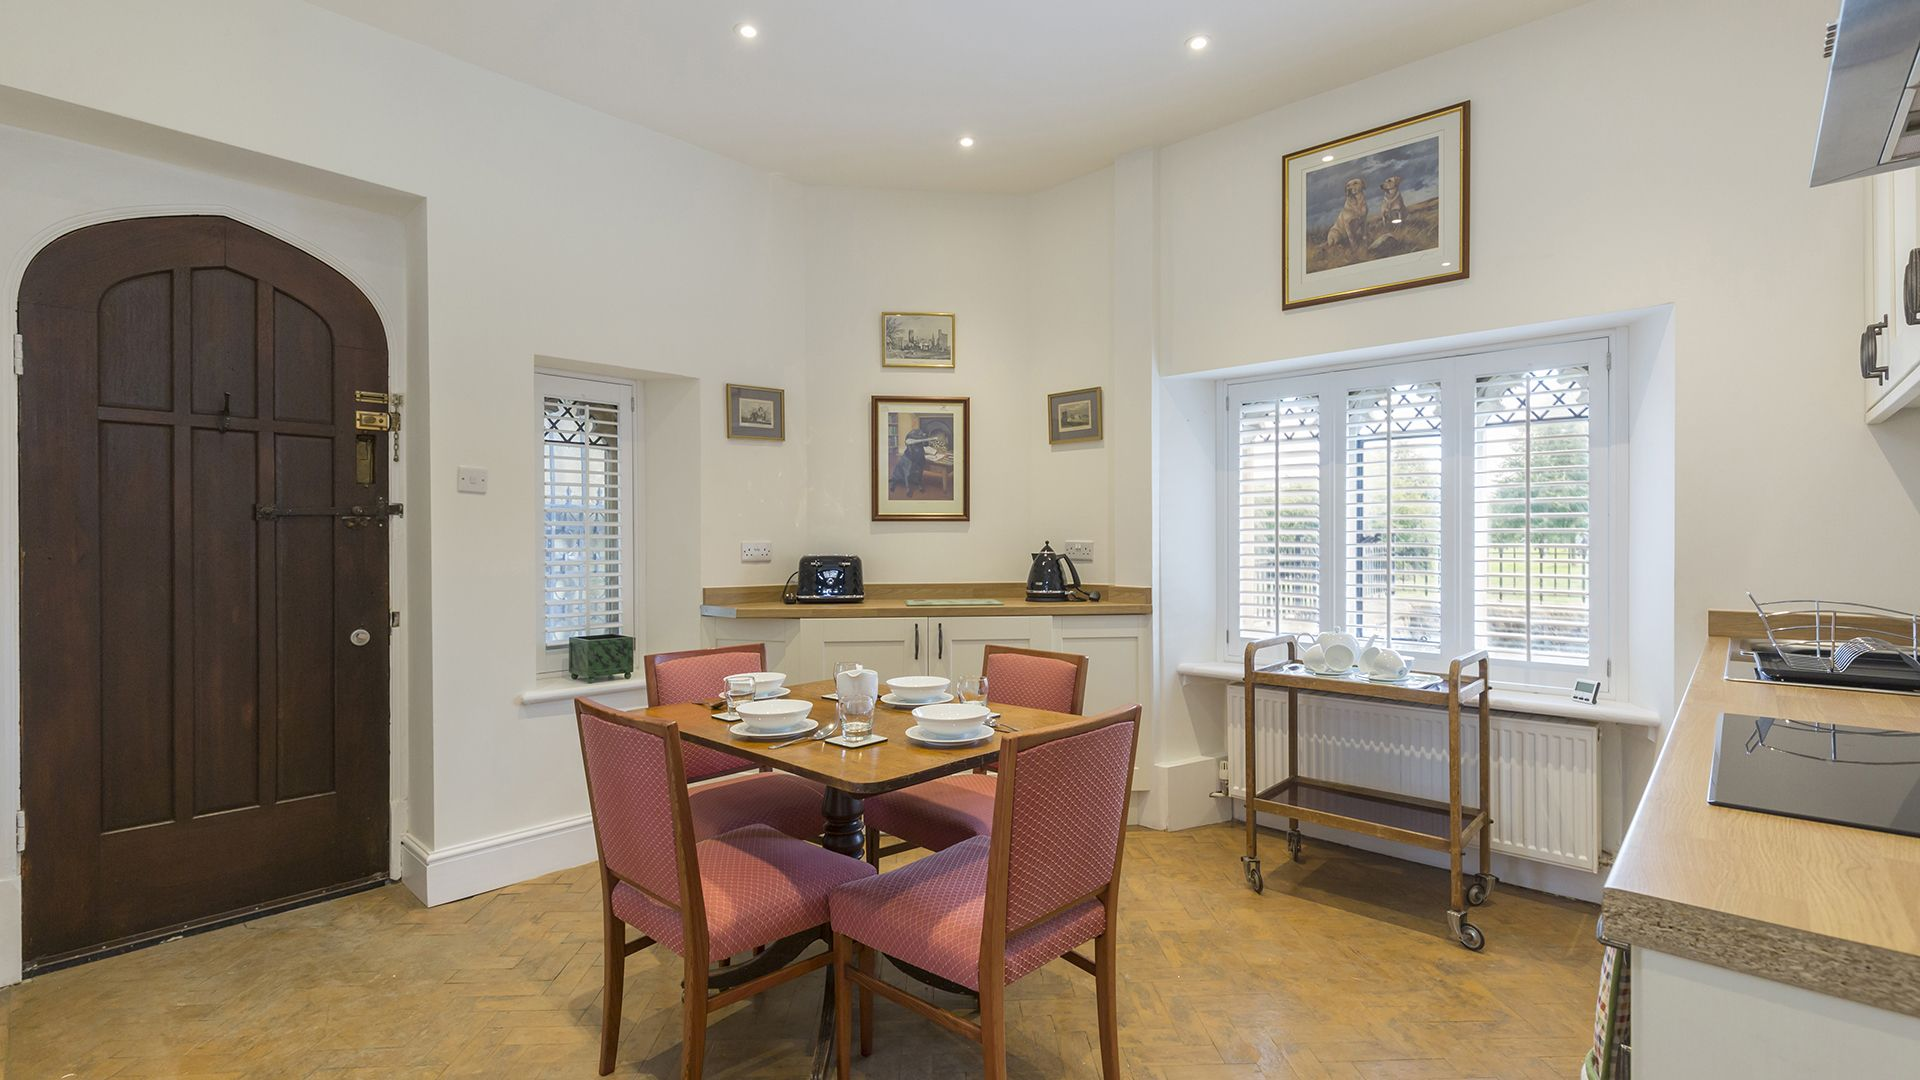 Kitchen with dining table, Castle Gatehouse at Sudeley Castle, Bolthole Retreats